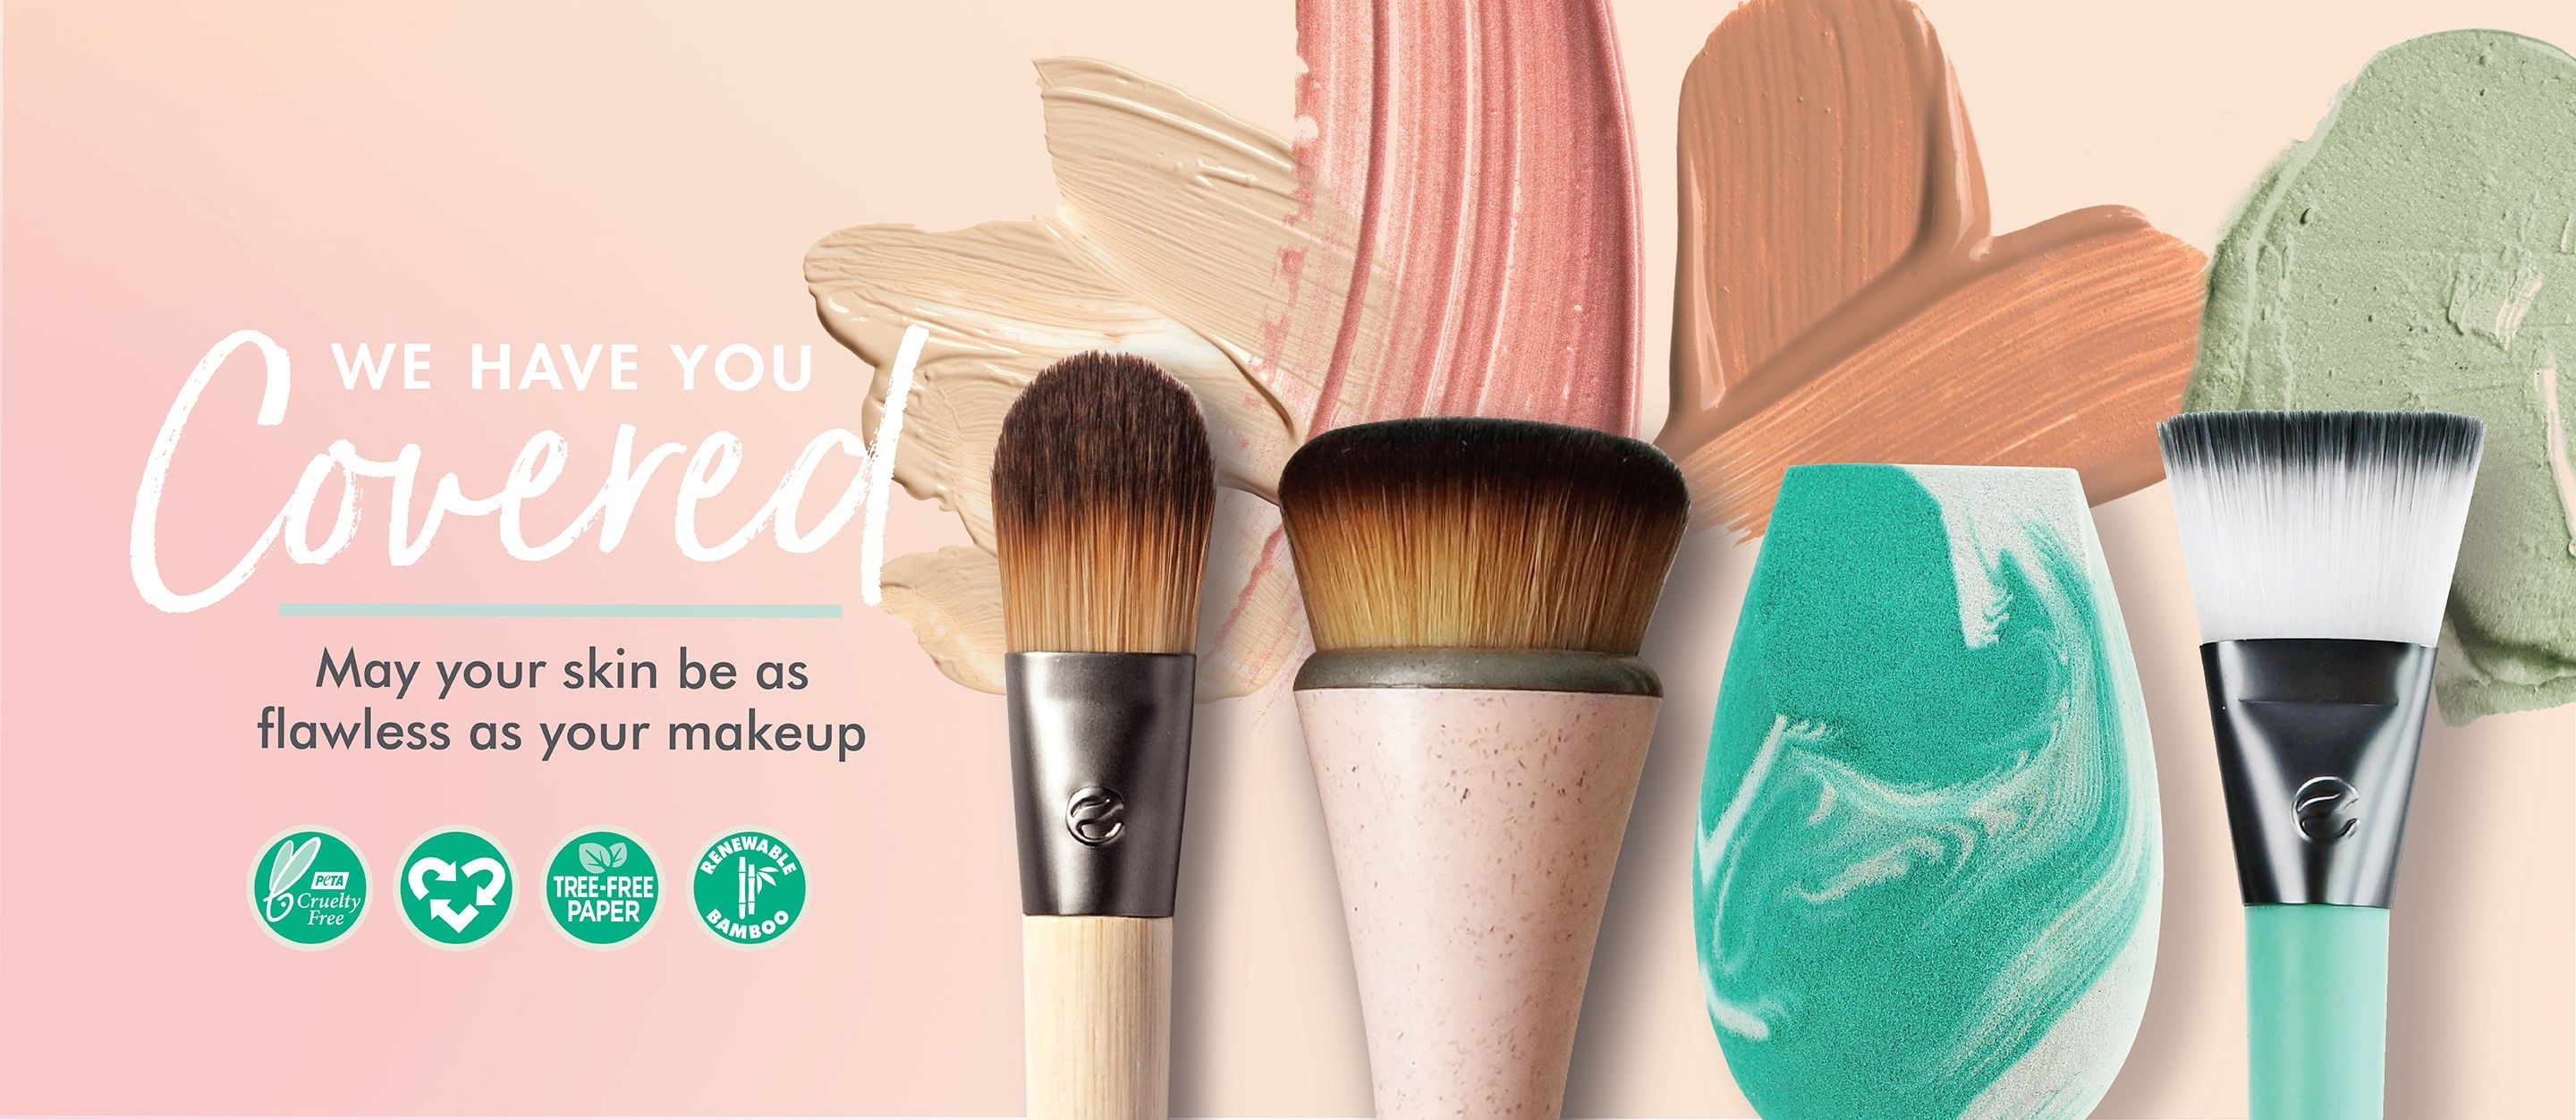 Vegan Makeup Brushes Natural Beauty Products EcoTools